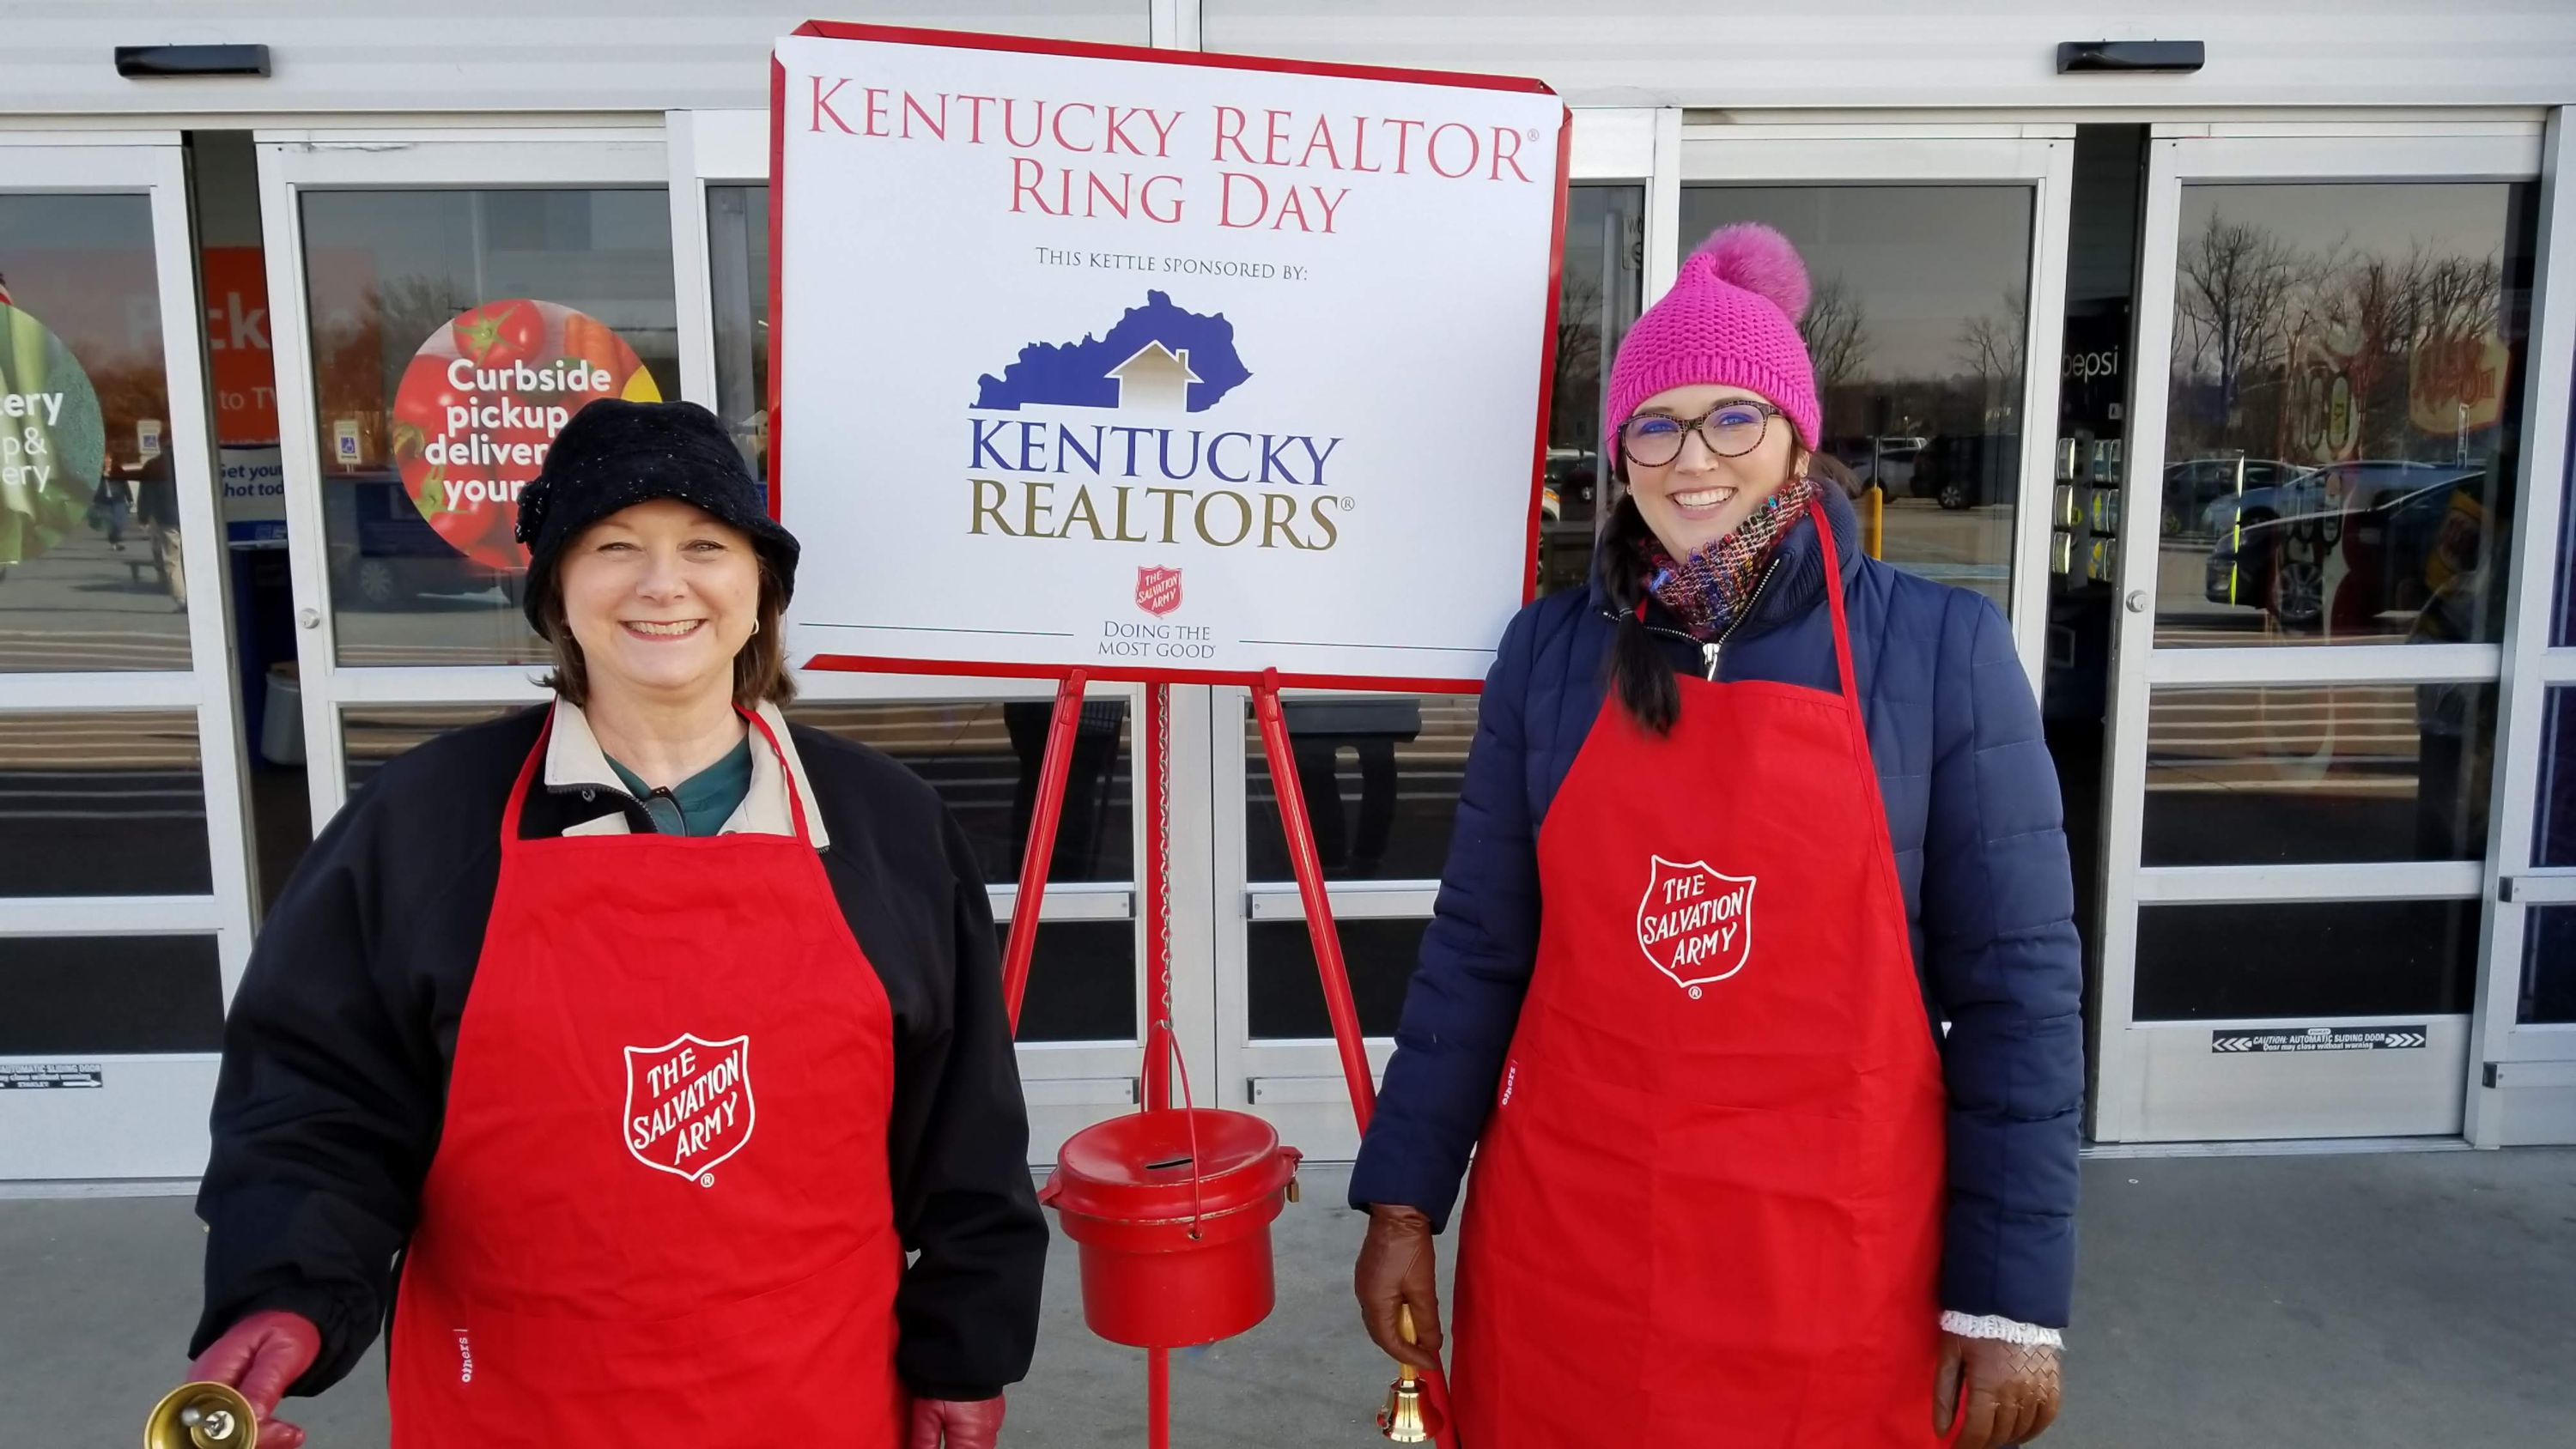 Kentucky REALTOR® Ring Day Raises over $13,000 for Salvation Army